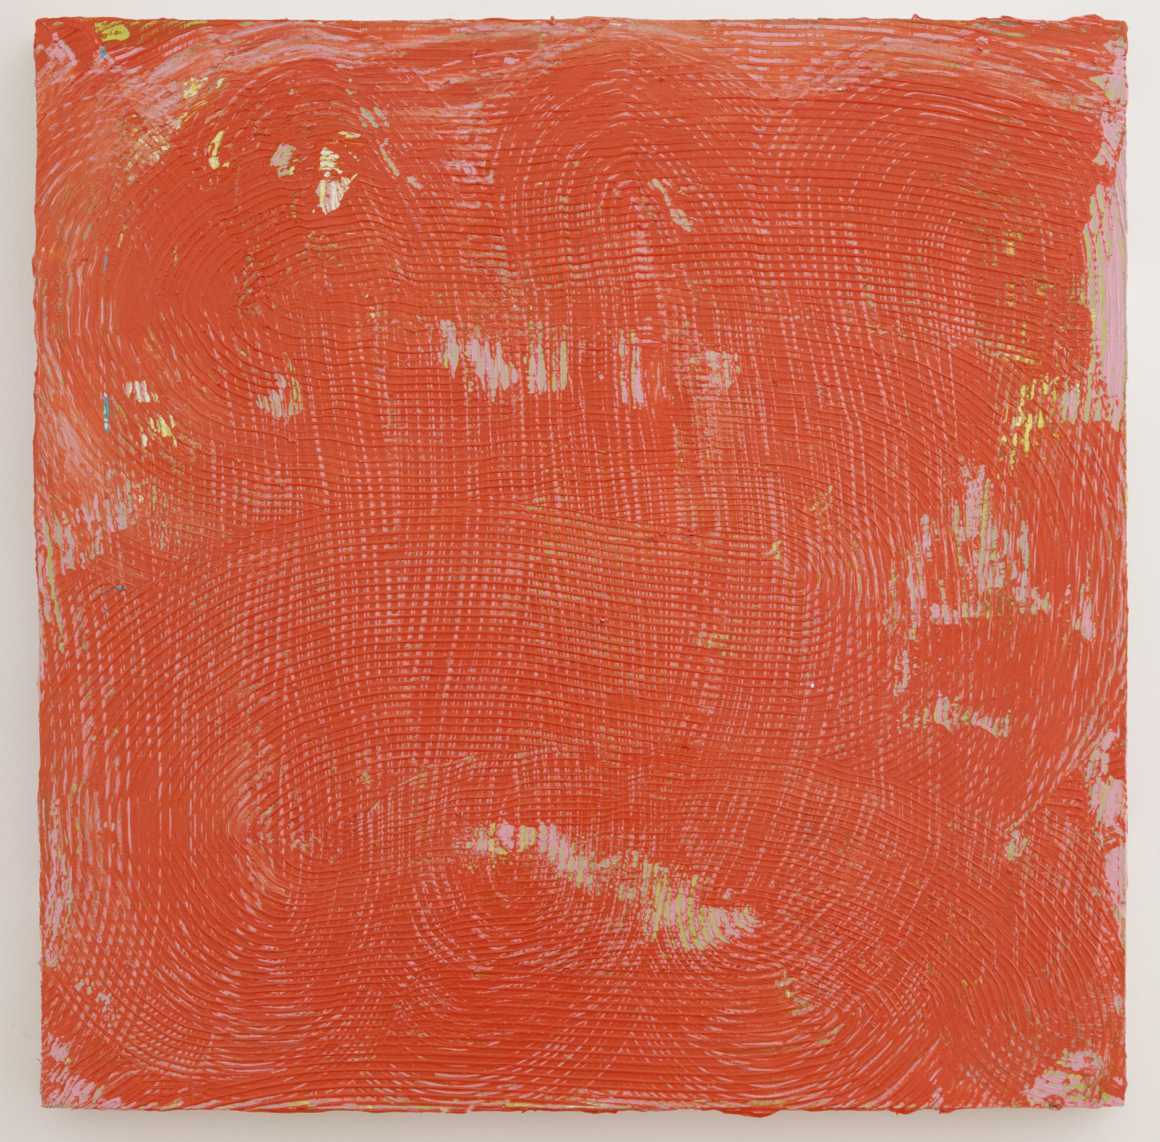 "<p><span class=""name"">Adam Bateman</span><br><em>Orange</em><span class='media'>acrylic and spray paint on panel</span>24 x 24 in  (61 x 61 cm)<br>2014<br><a class='inquire' href='mailto:info@gildargallery.com?subject=Artwork Inquiry ABAT0004&body=I am interested in finding out more about Orange by Adam Bateman'>Inquire</a></p>"